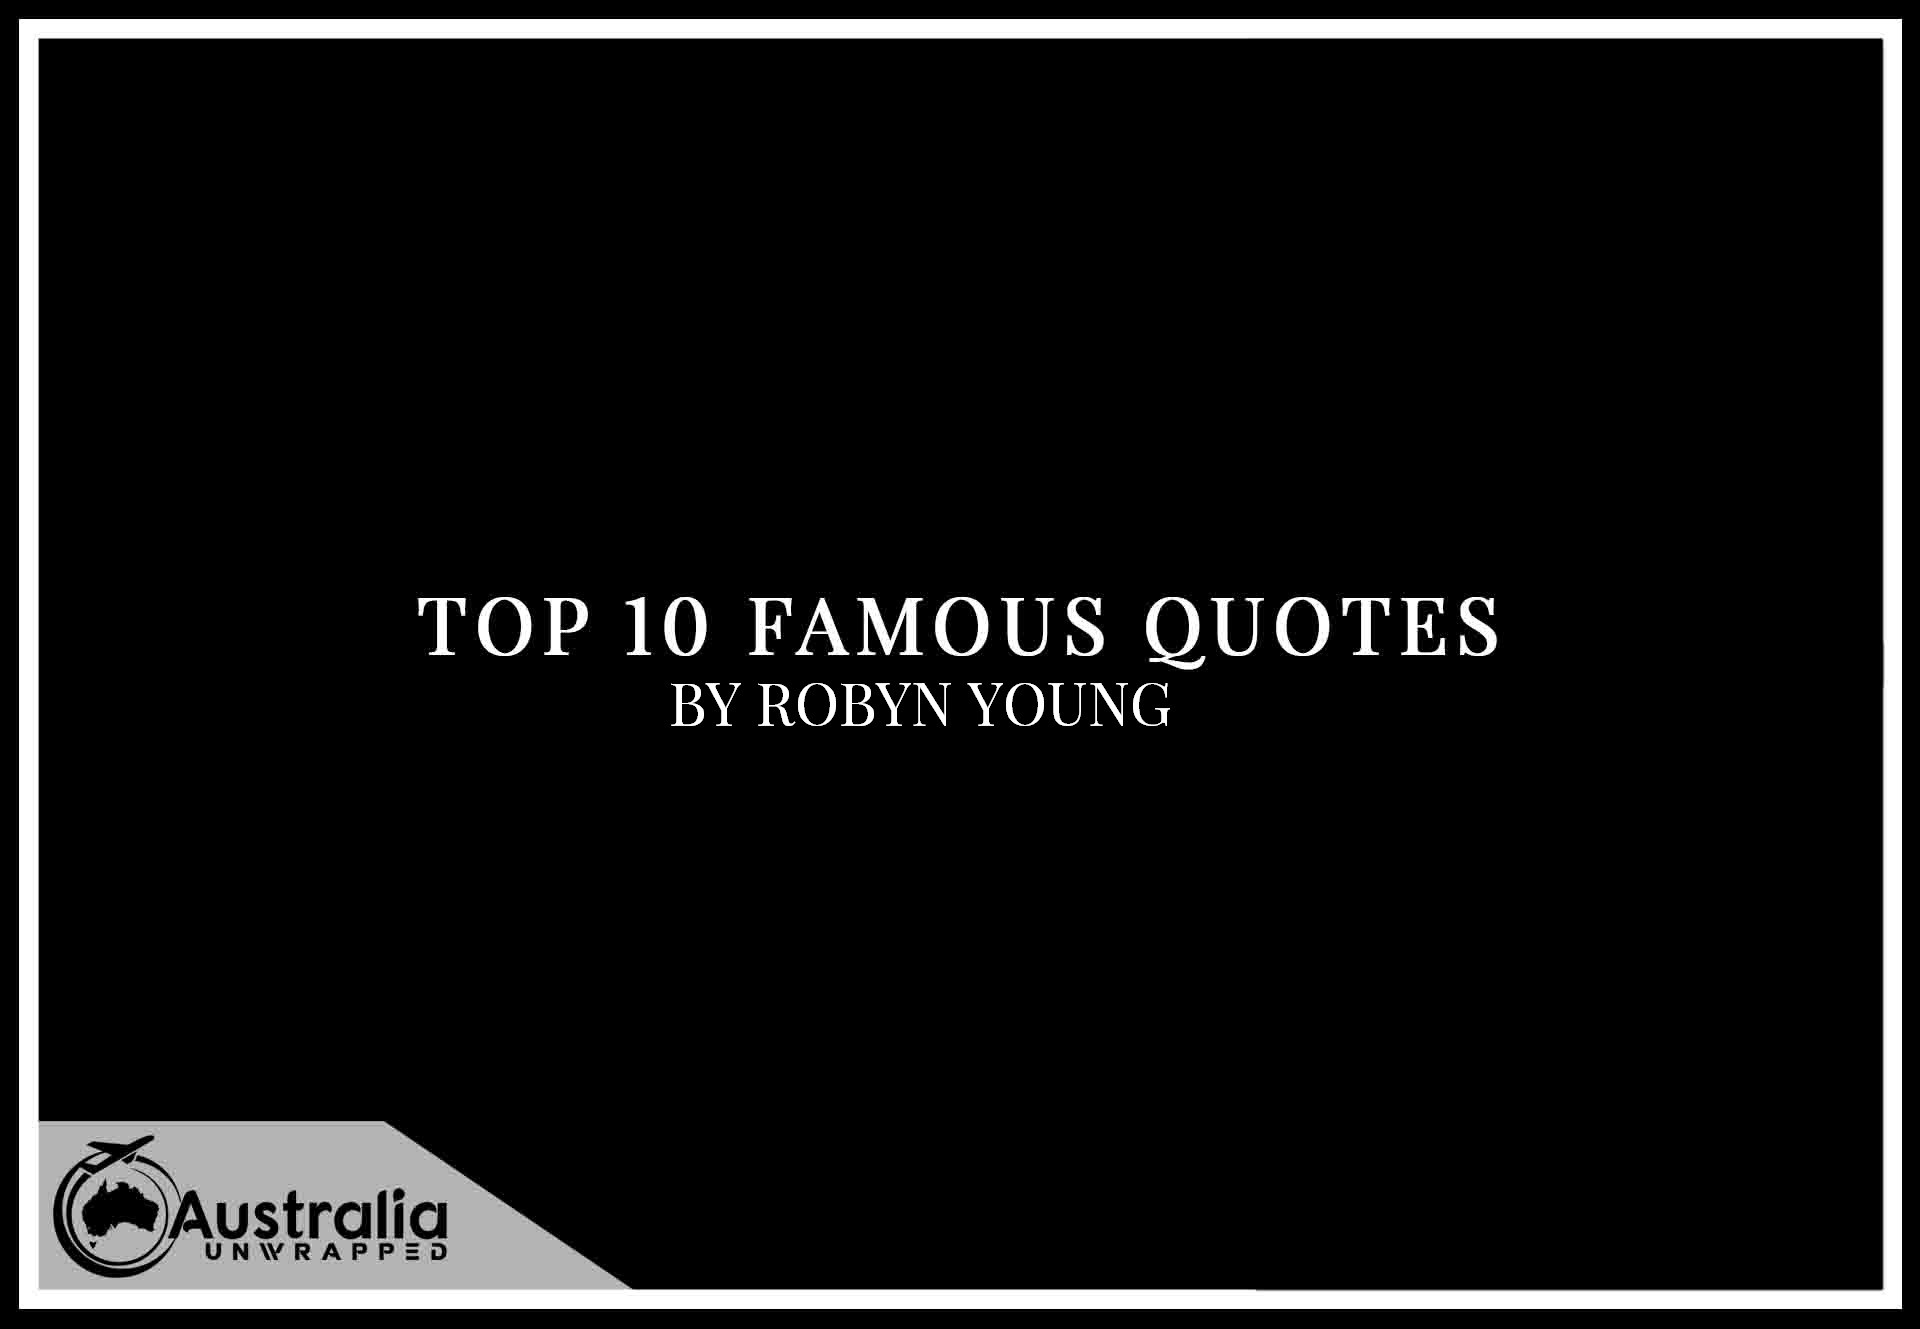 Top 10 Famous Quotes by Author Robyn Young